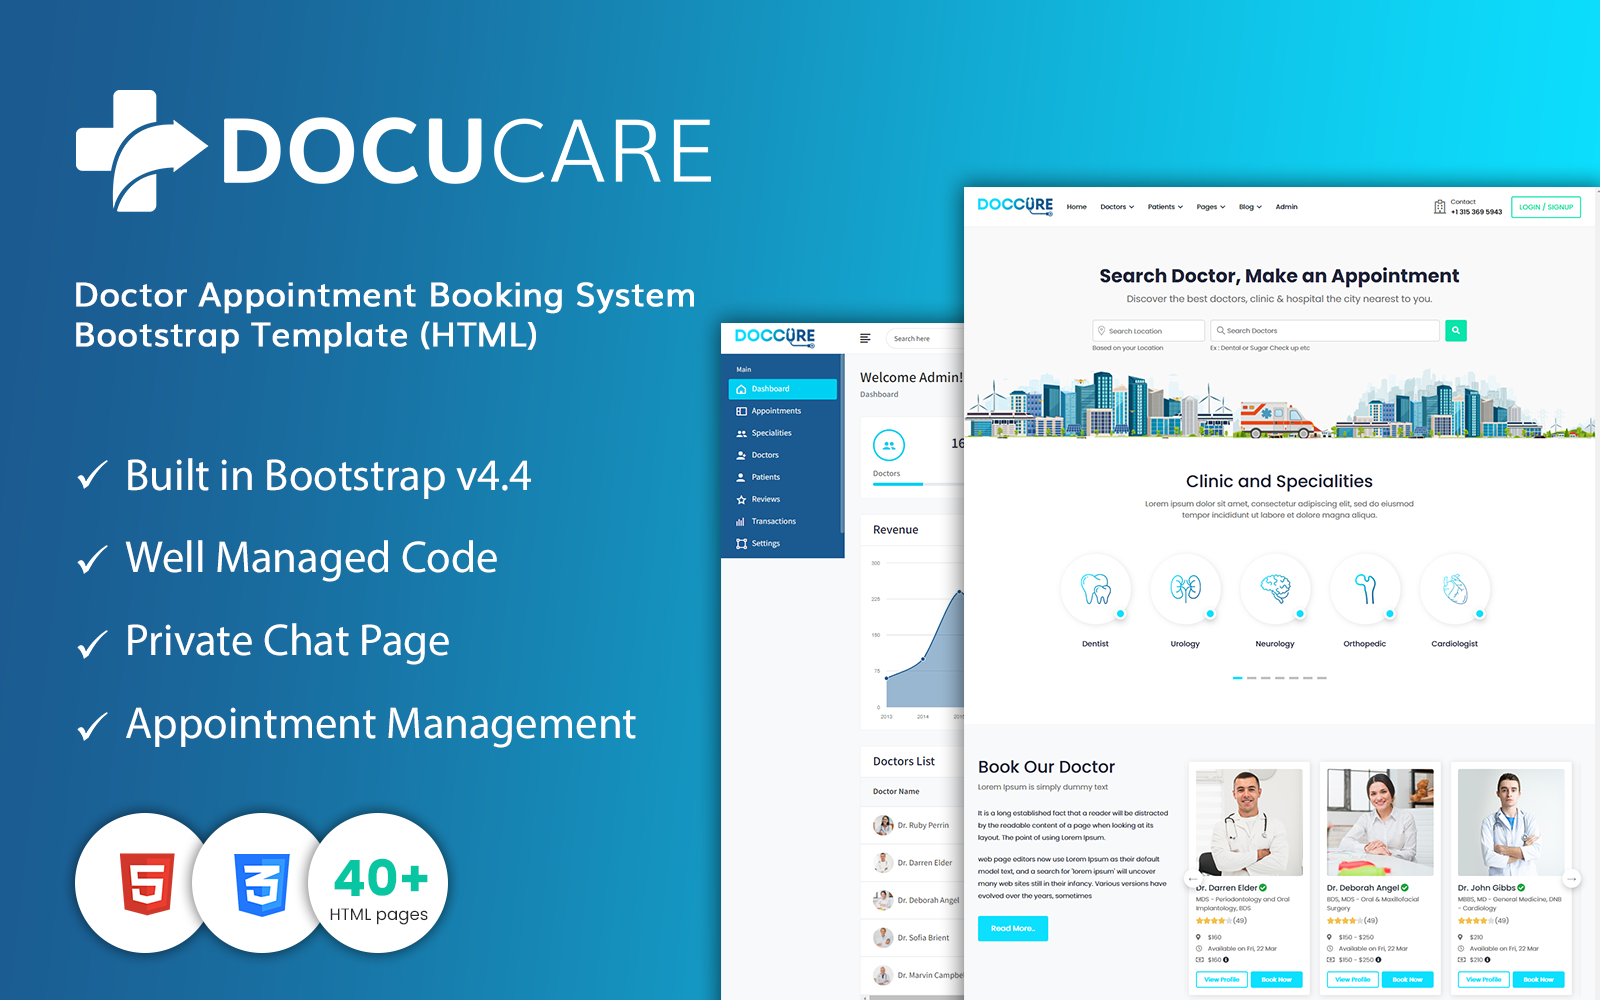 Docucare - Doctor Appointment Booking